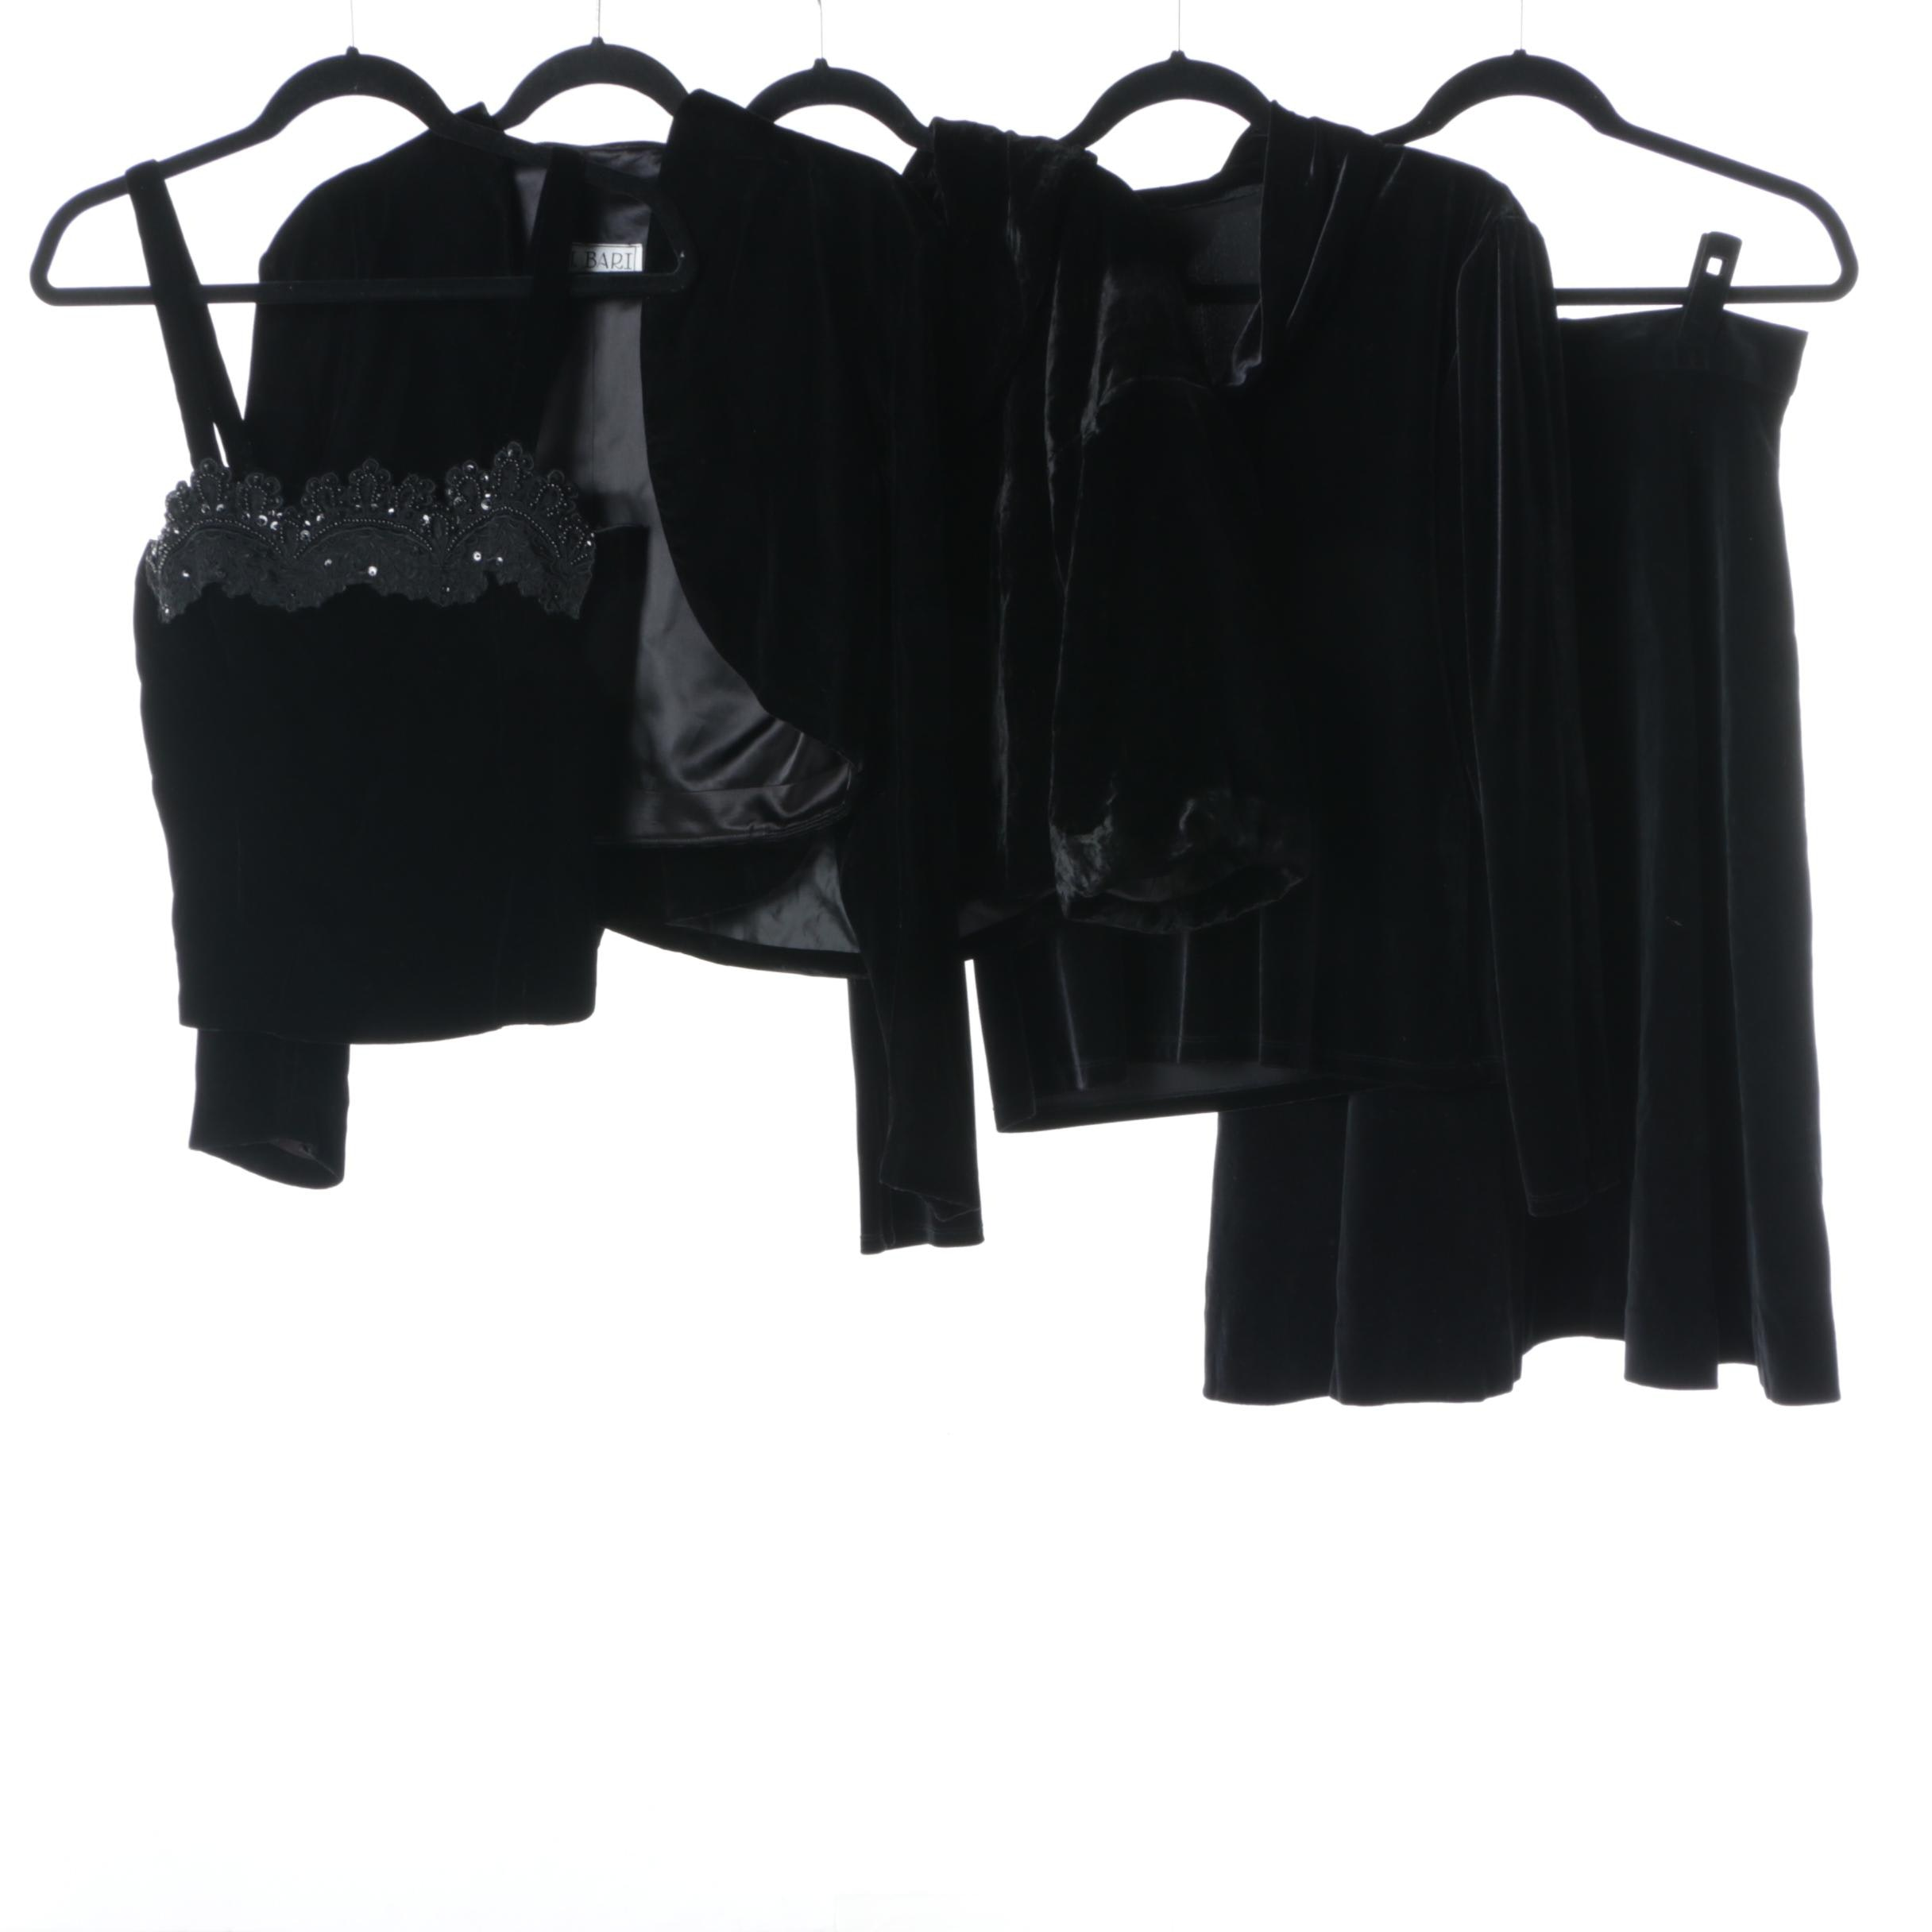 Women's Black Velvet Evening Wear Including Willi Smith